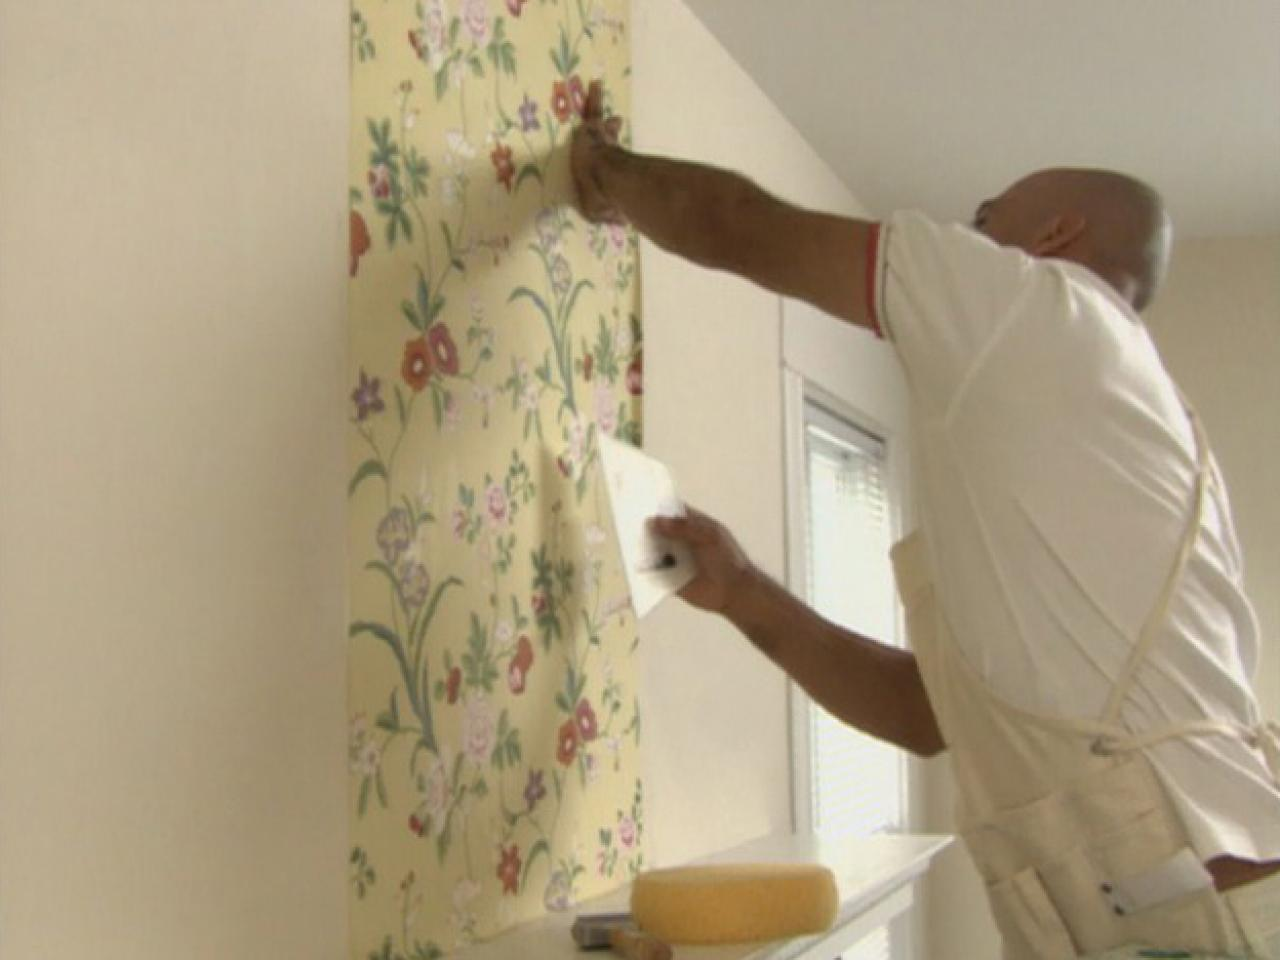 How To Wallpaper On Wallpaper – Change Your Room Right Now